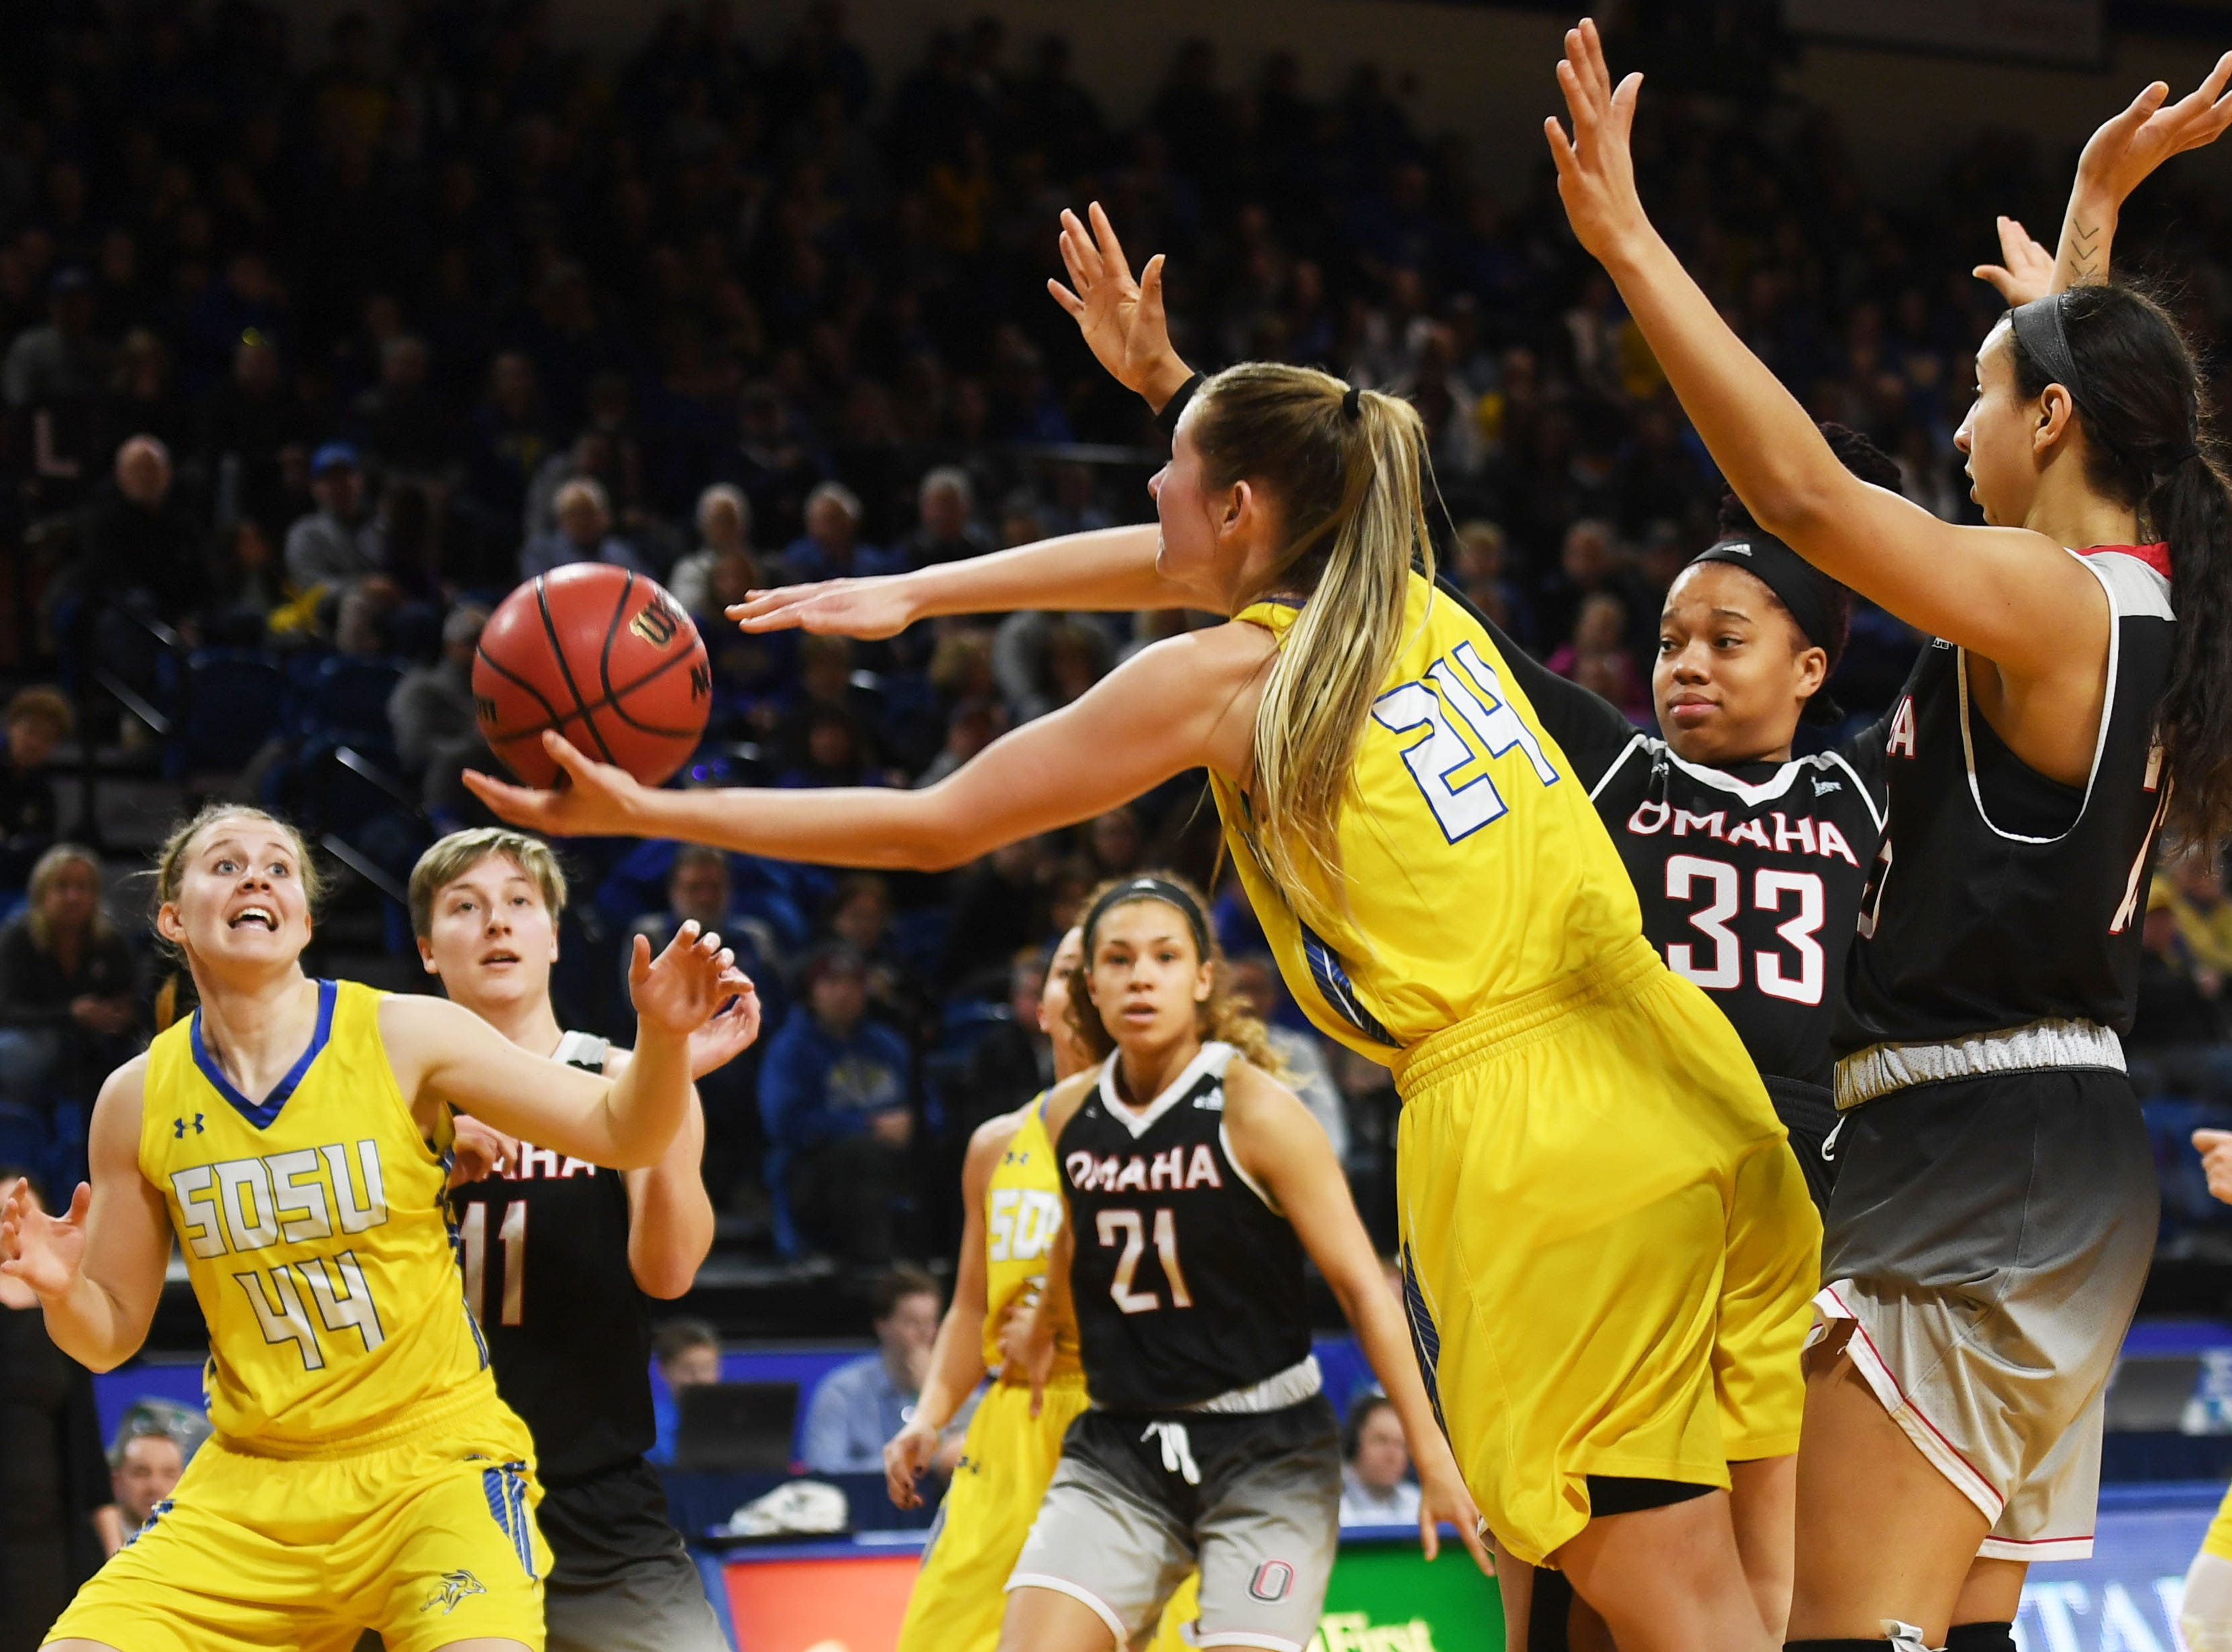 SDSU's Tagyn Larson (24) attempts to pass the ball to Myah Selland (44) under the net during the game against Omaha Saturday, Jan. 26, at Frost Arena in Brookings.